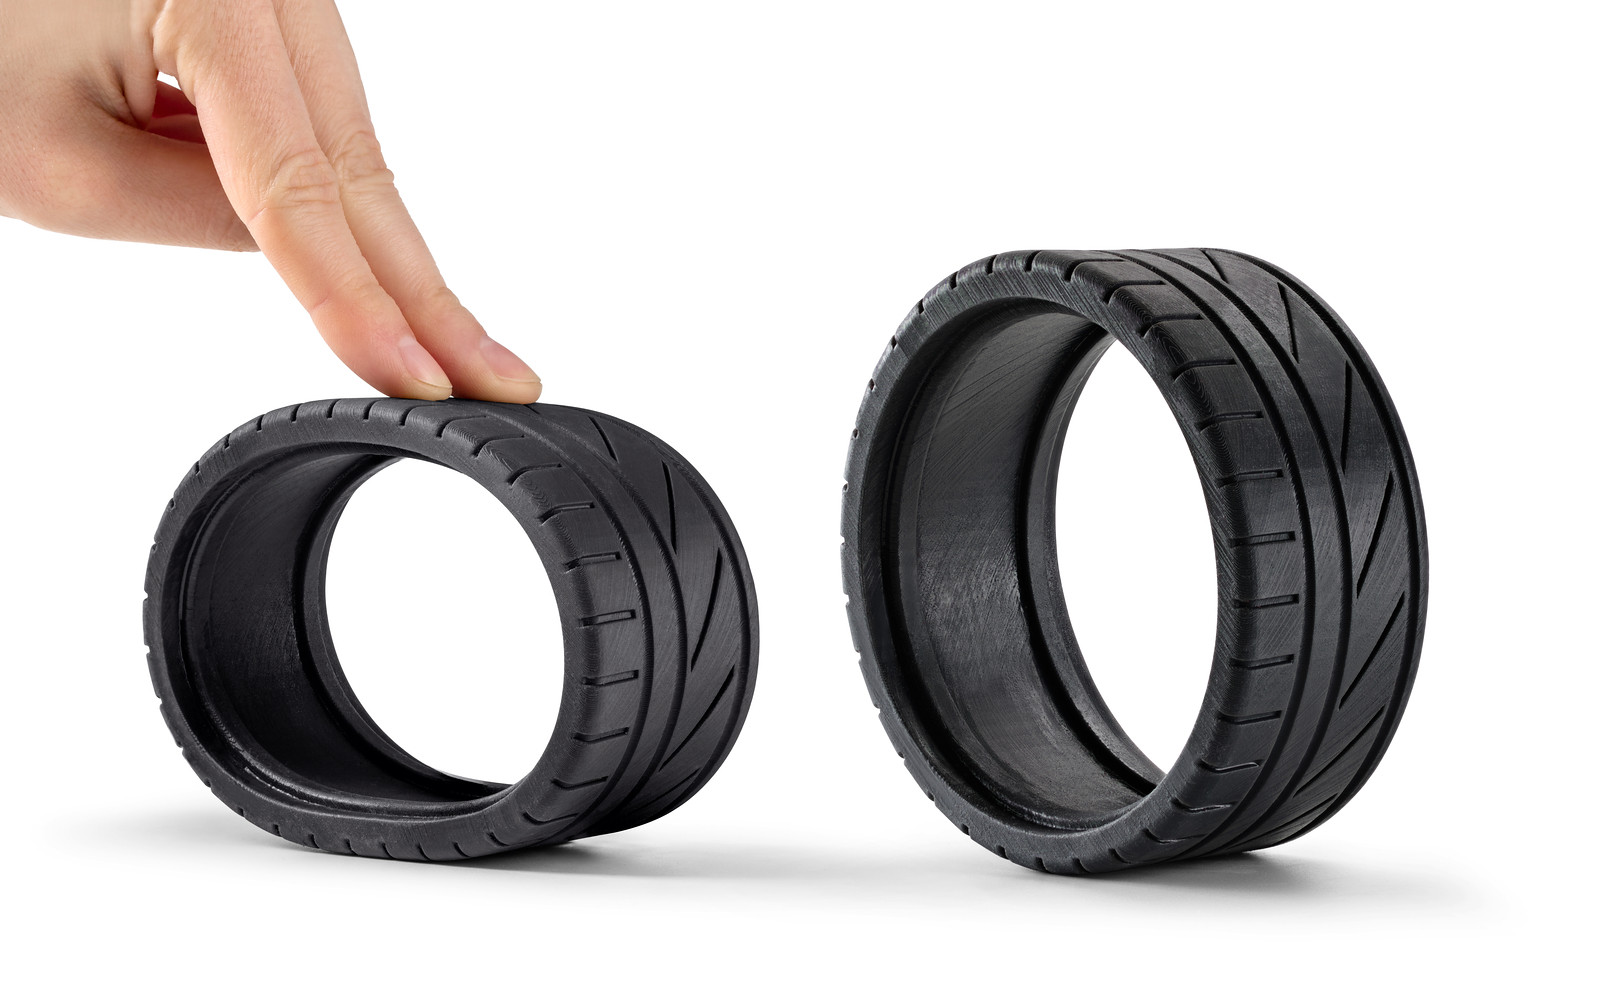 A model car tire 3D printed with SLA in Rubber-like (flexible) resin